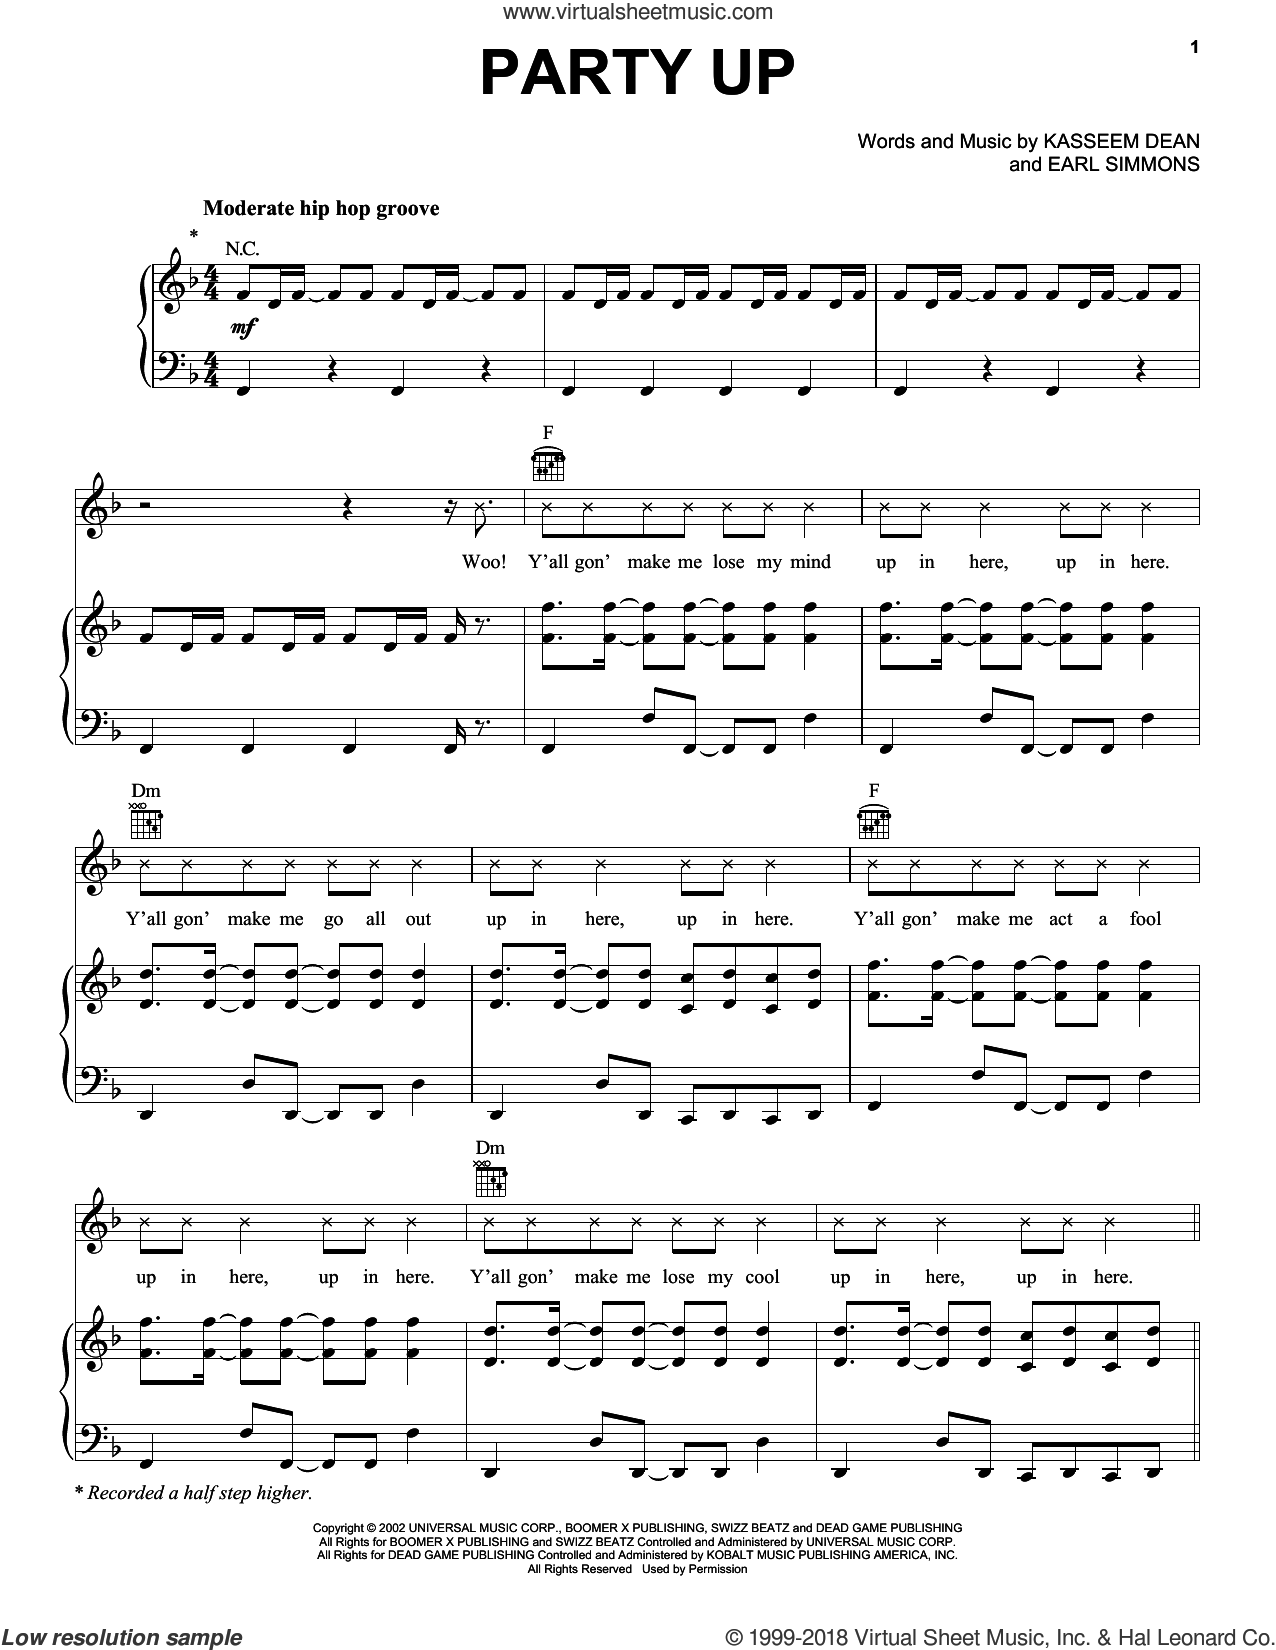 Party Up sheet music for voice, piano or guitar by DMX, Miscellaneous, Earl Simmons and Kasseem Dean, intermediate skill level